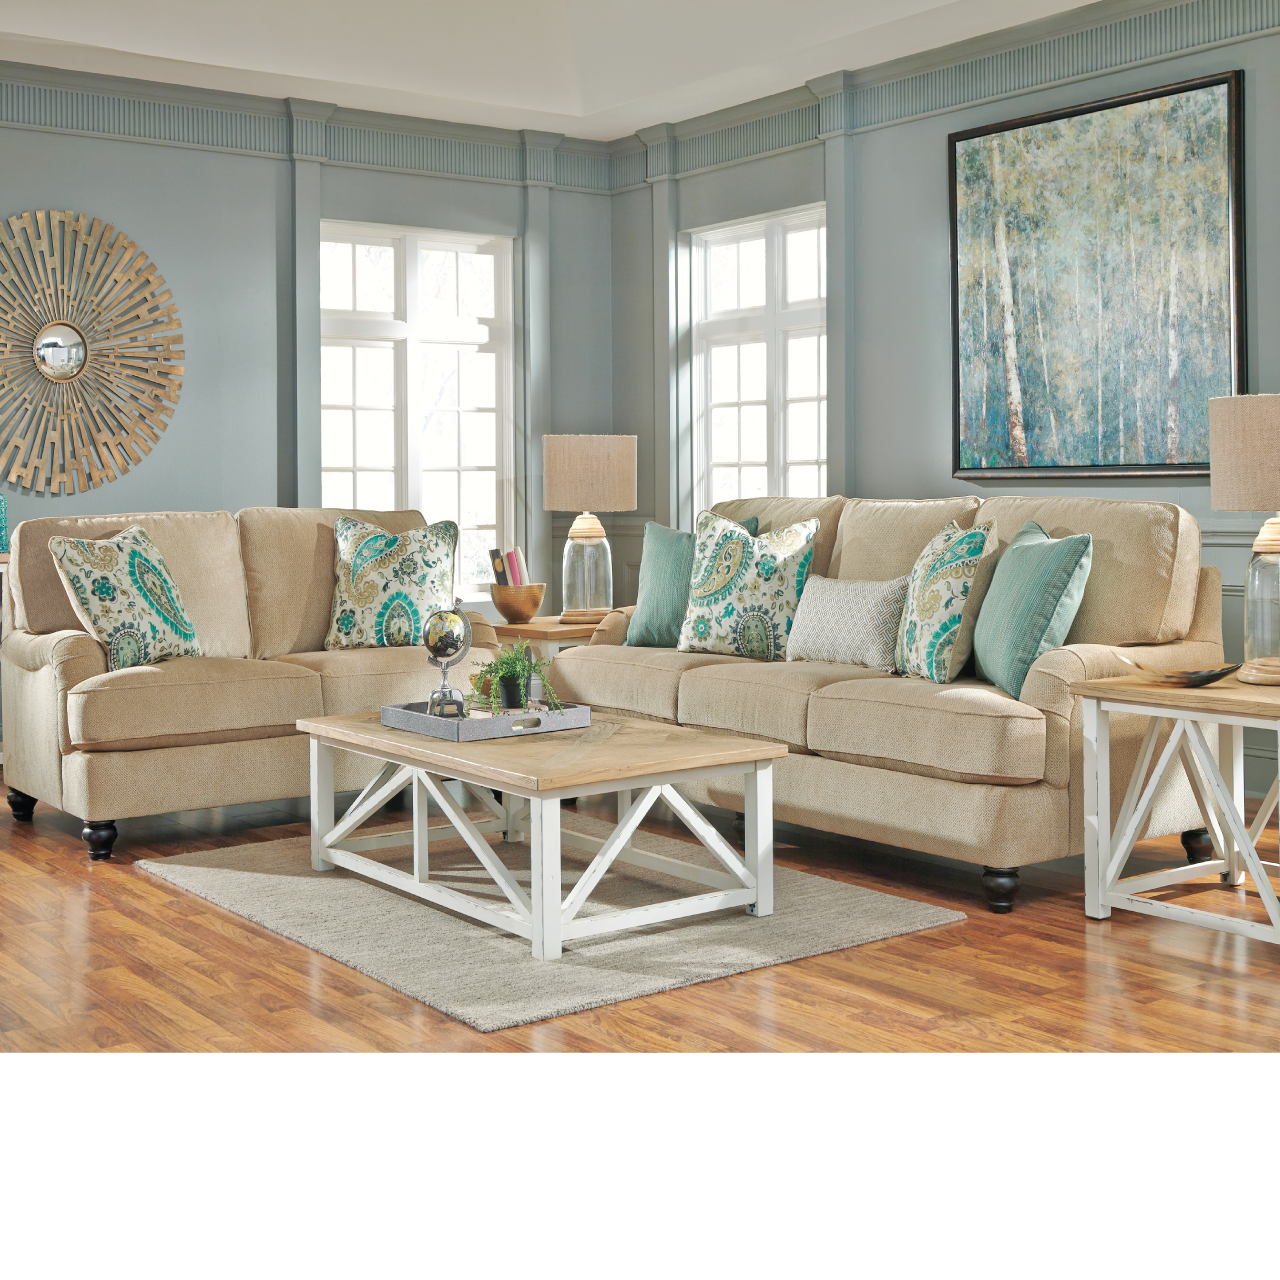 Living Room Design Furniture Coastal Living Room Ideas Lochian Sofa By Ashley Furniture At